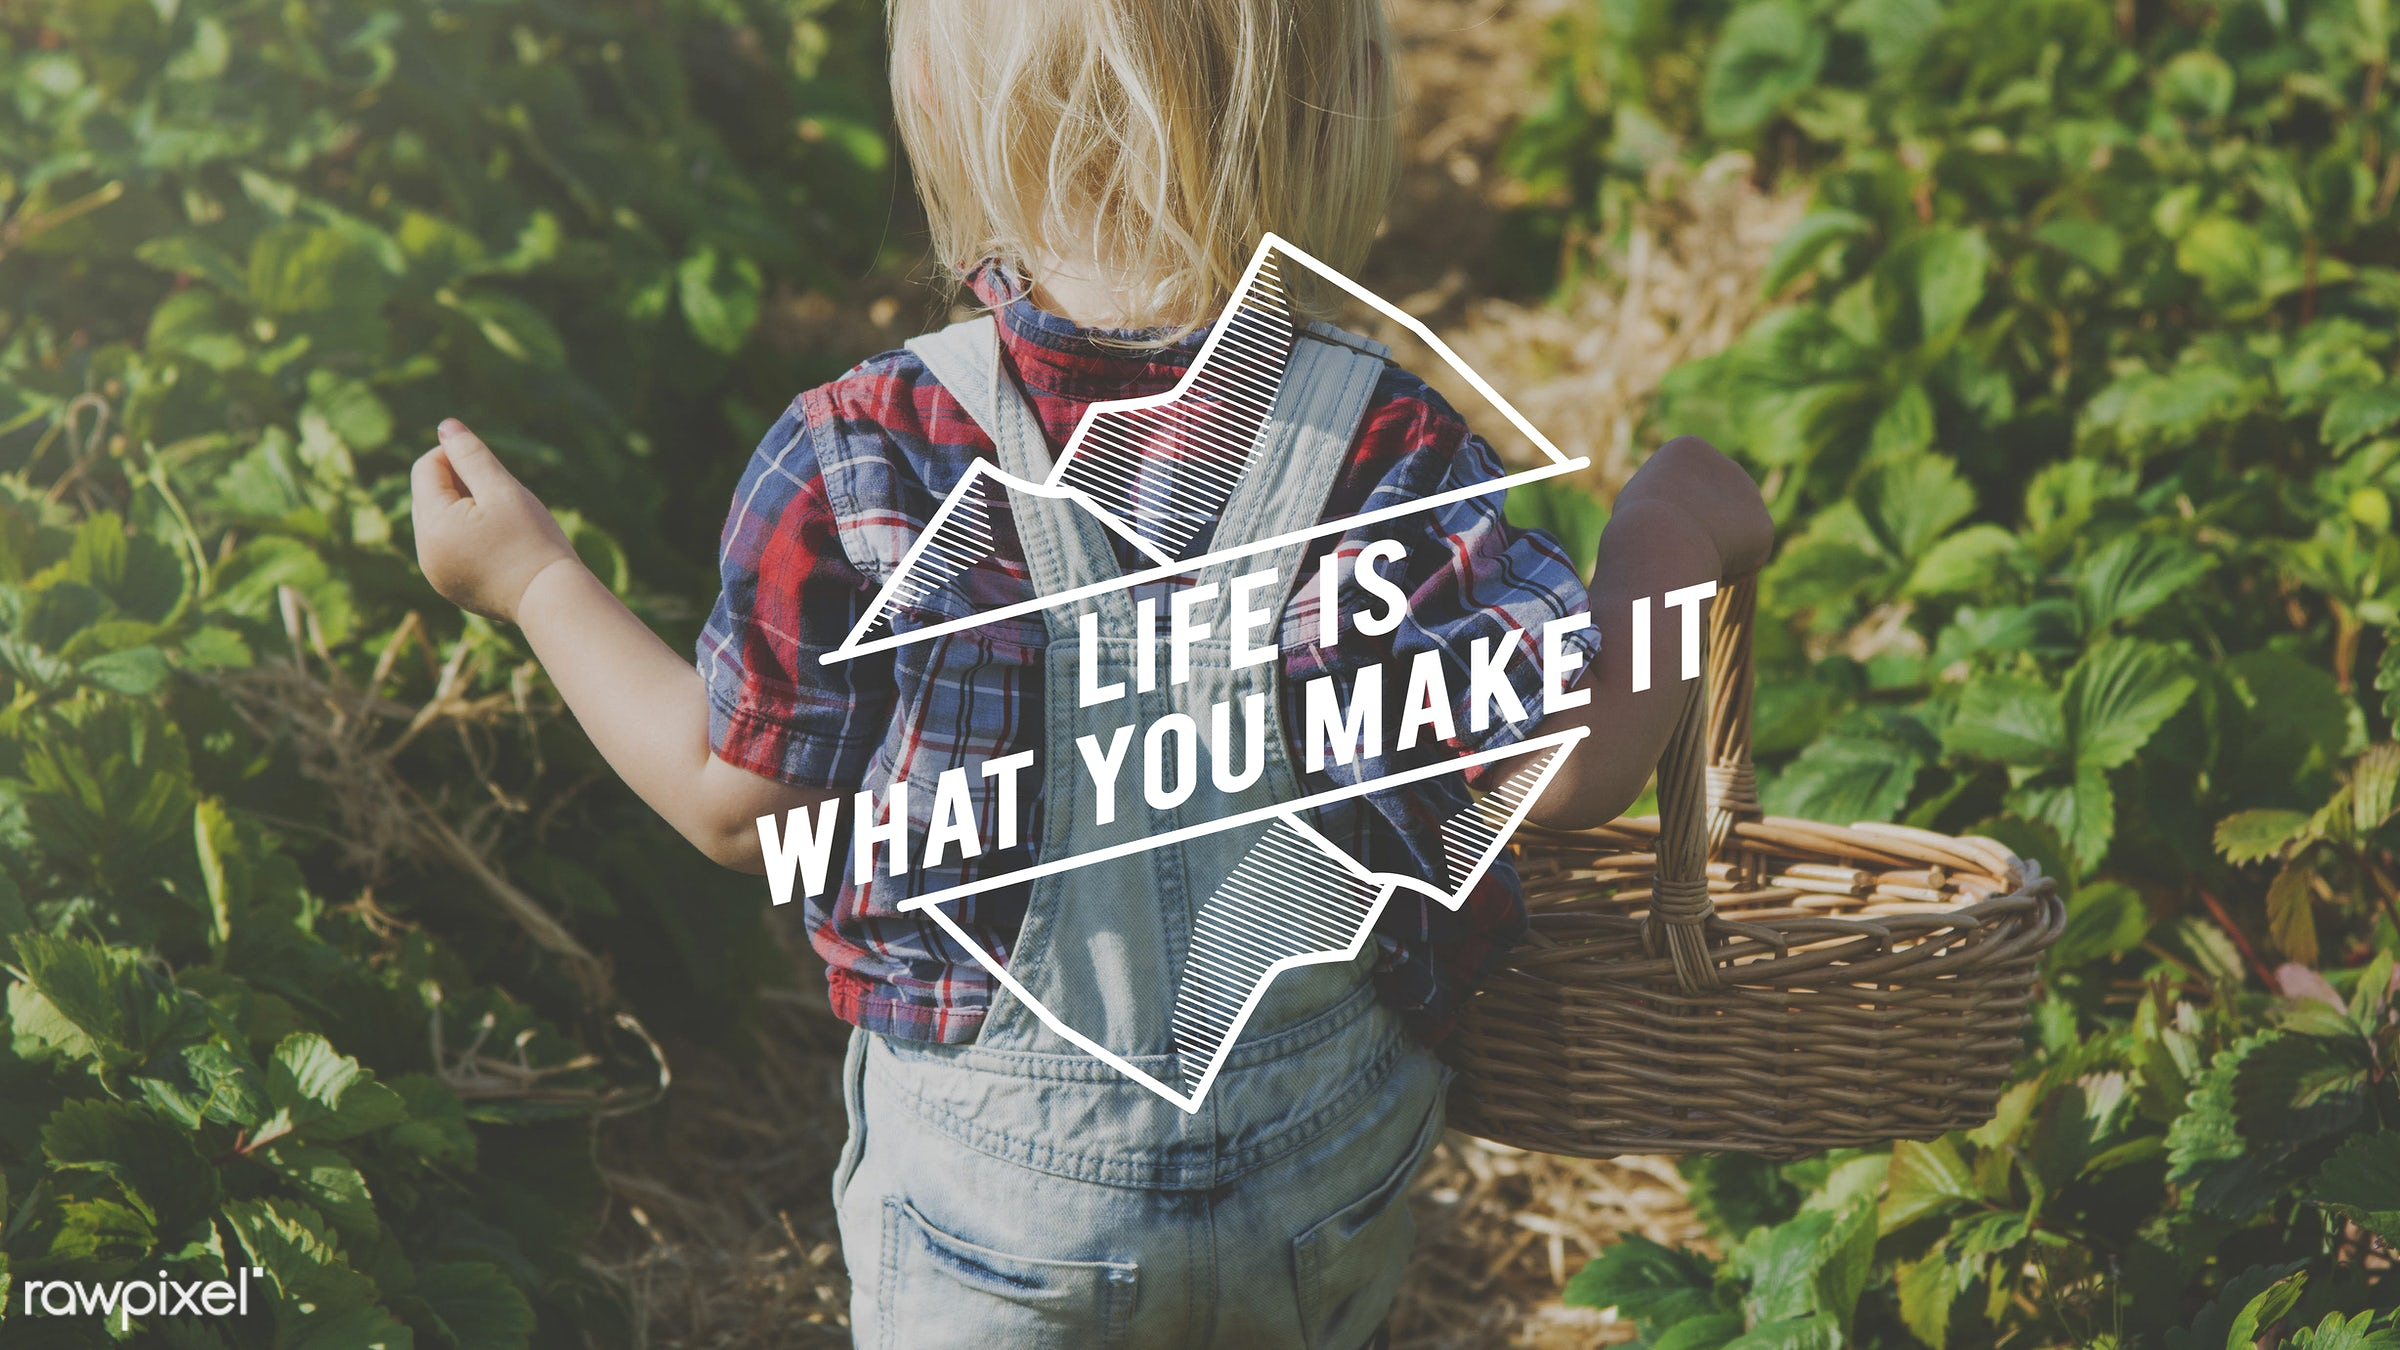 boy, action, attitude, basket, blonde, caucasian, change, dare, don't be afraid to be great, dungarees, farm, freedom, fruit...